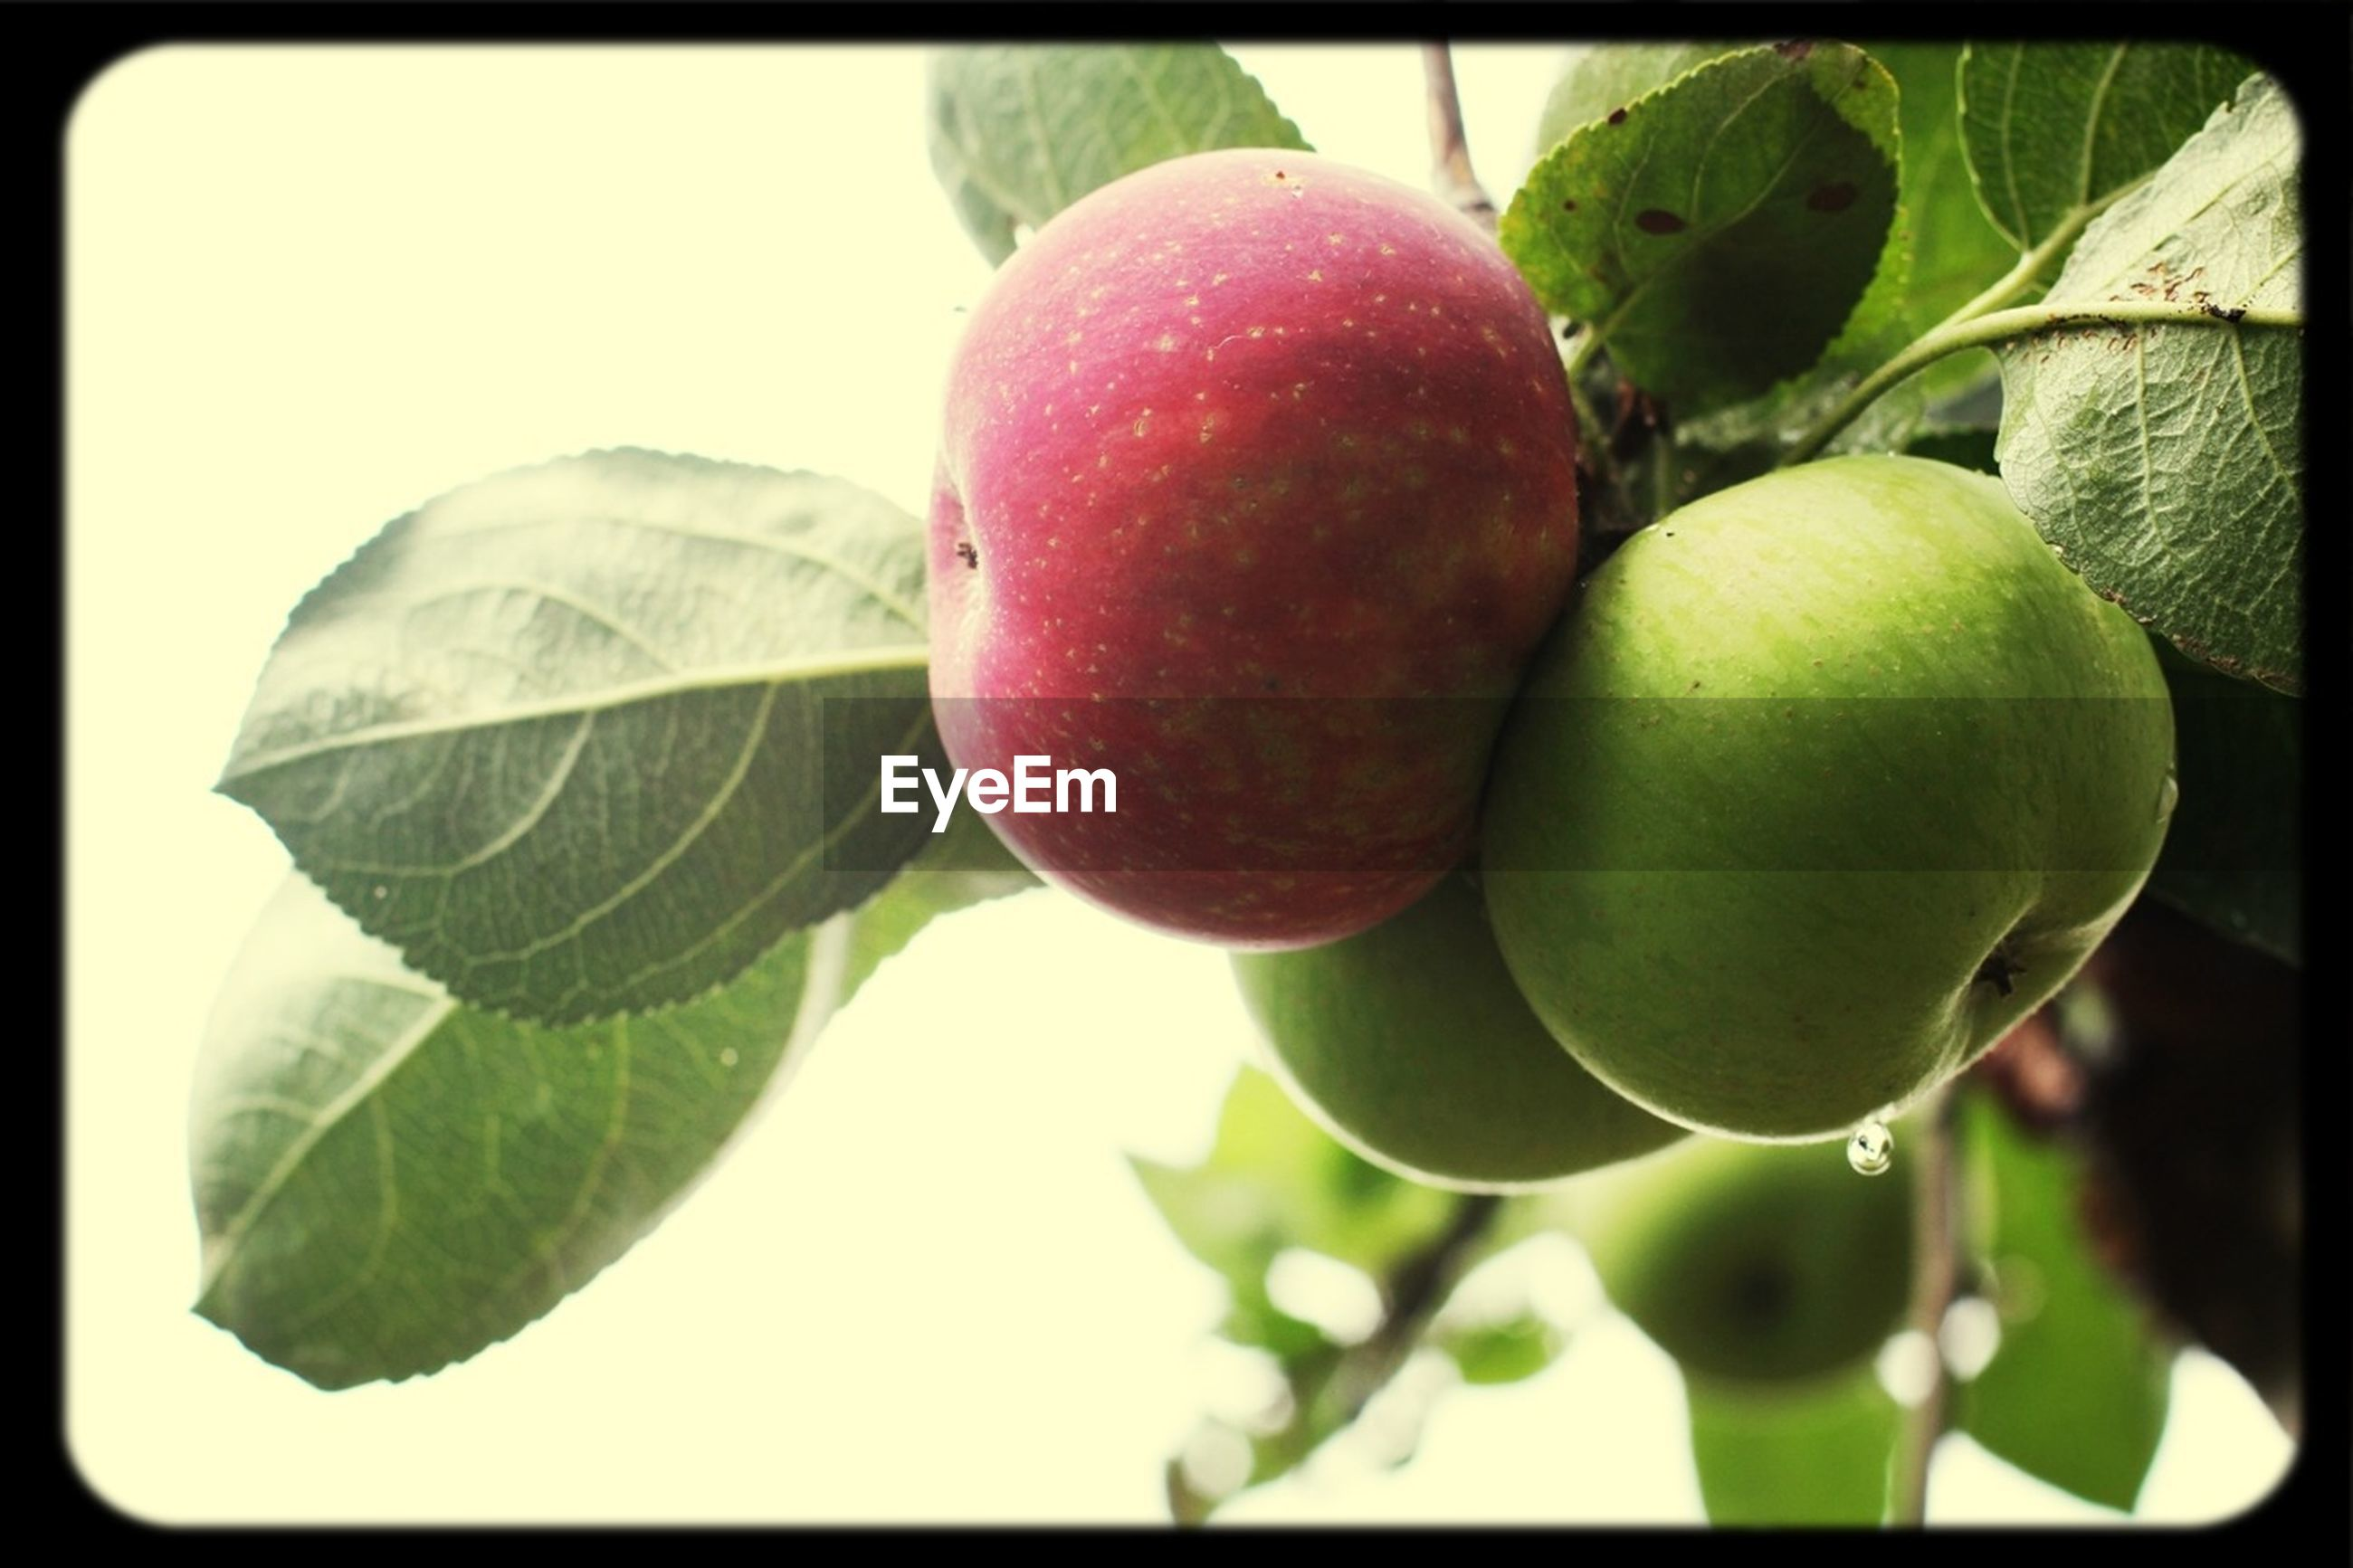 fruit, food and drink, healthy eating, food, freshness, green color, transfer print, close-up, leaf, growth, tree, ripe, branch, hanging, auto post production filter, apple, focus on foreground, apple - fruit, red, nature